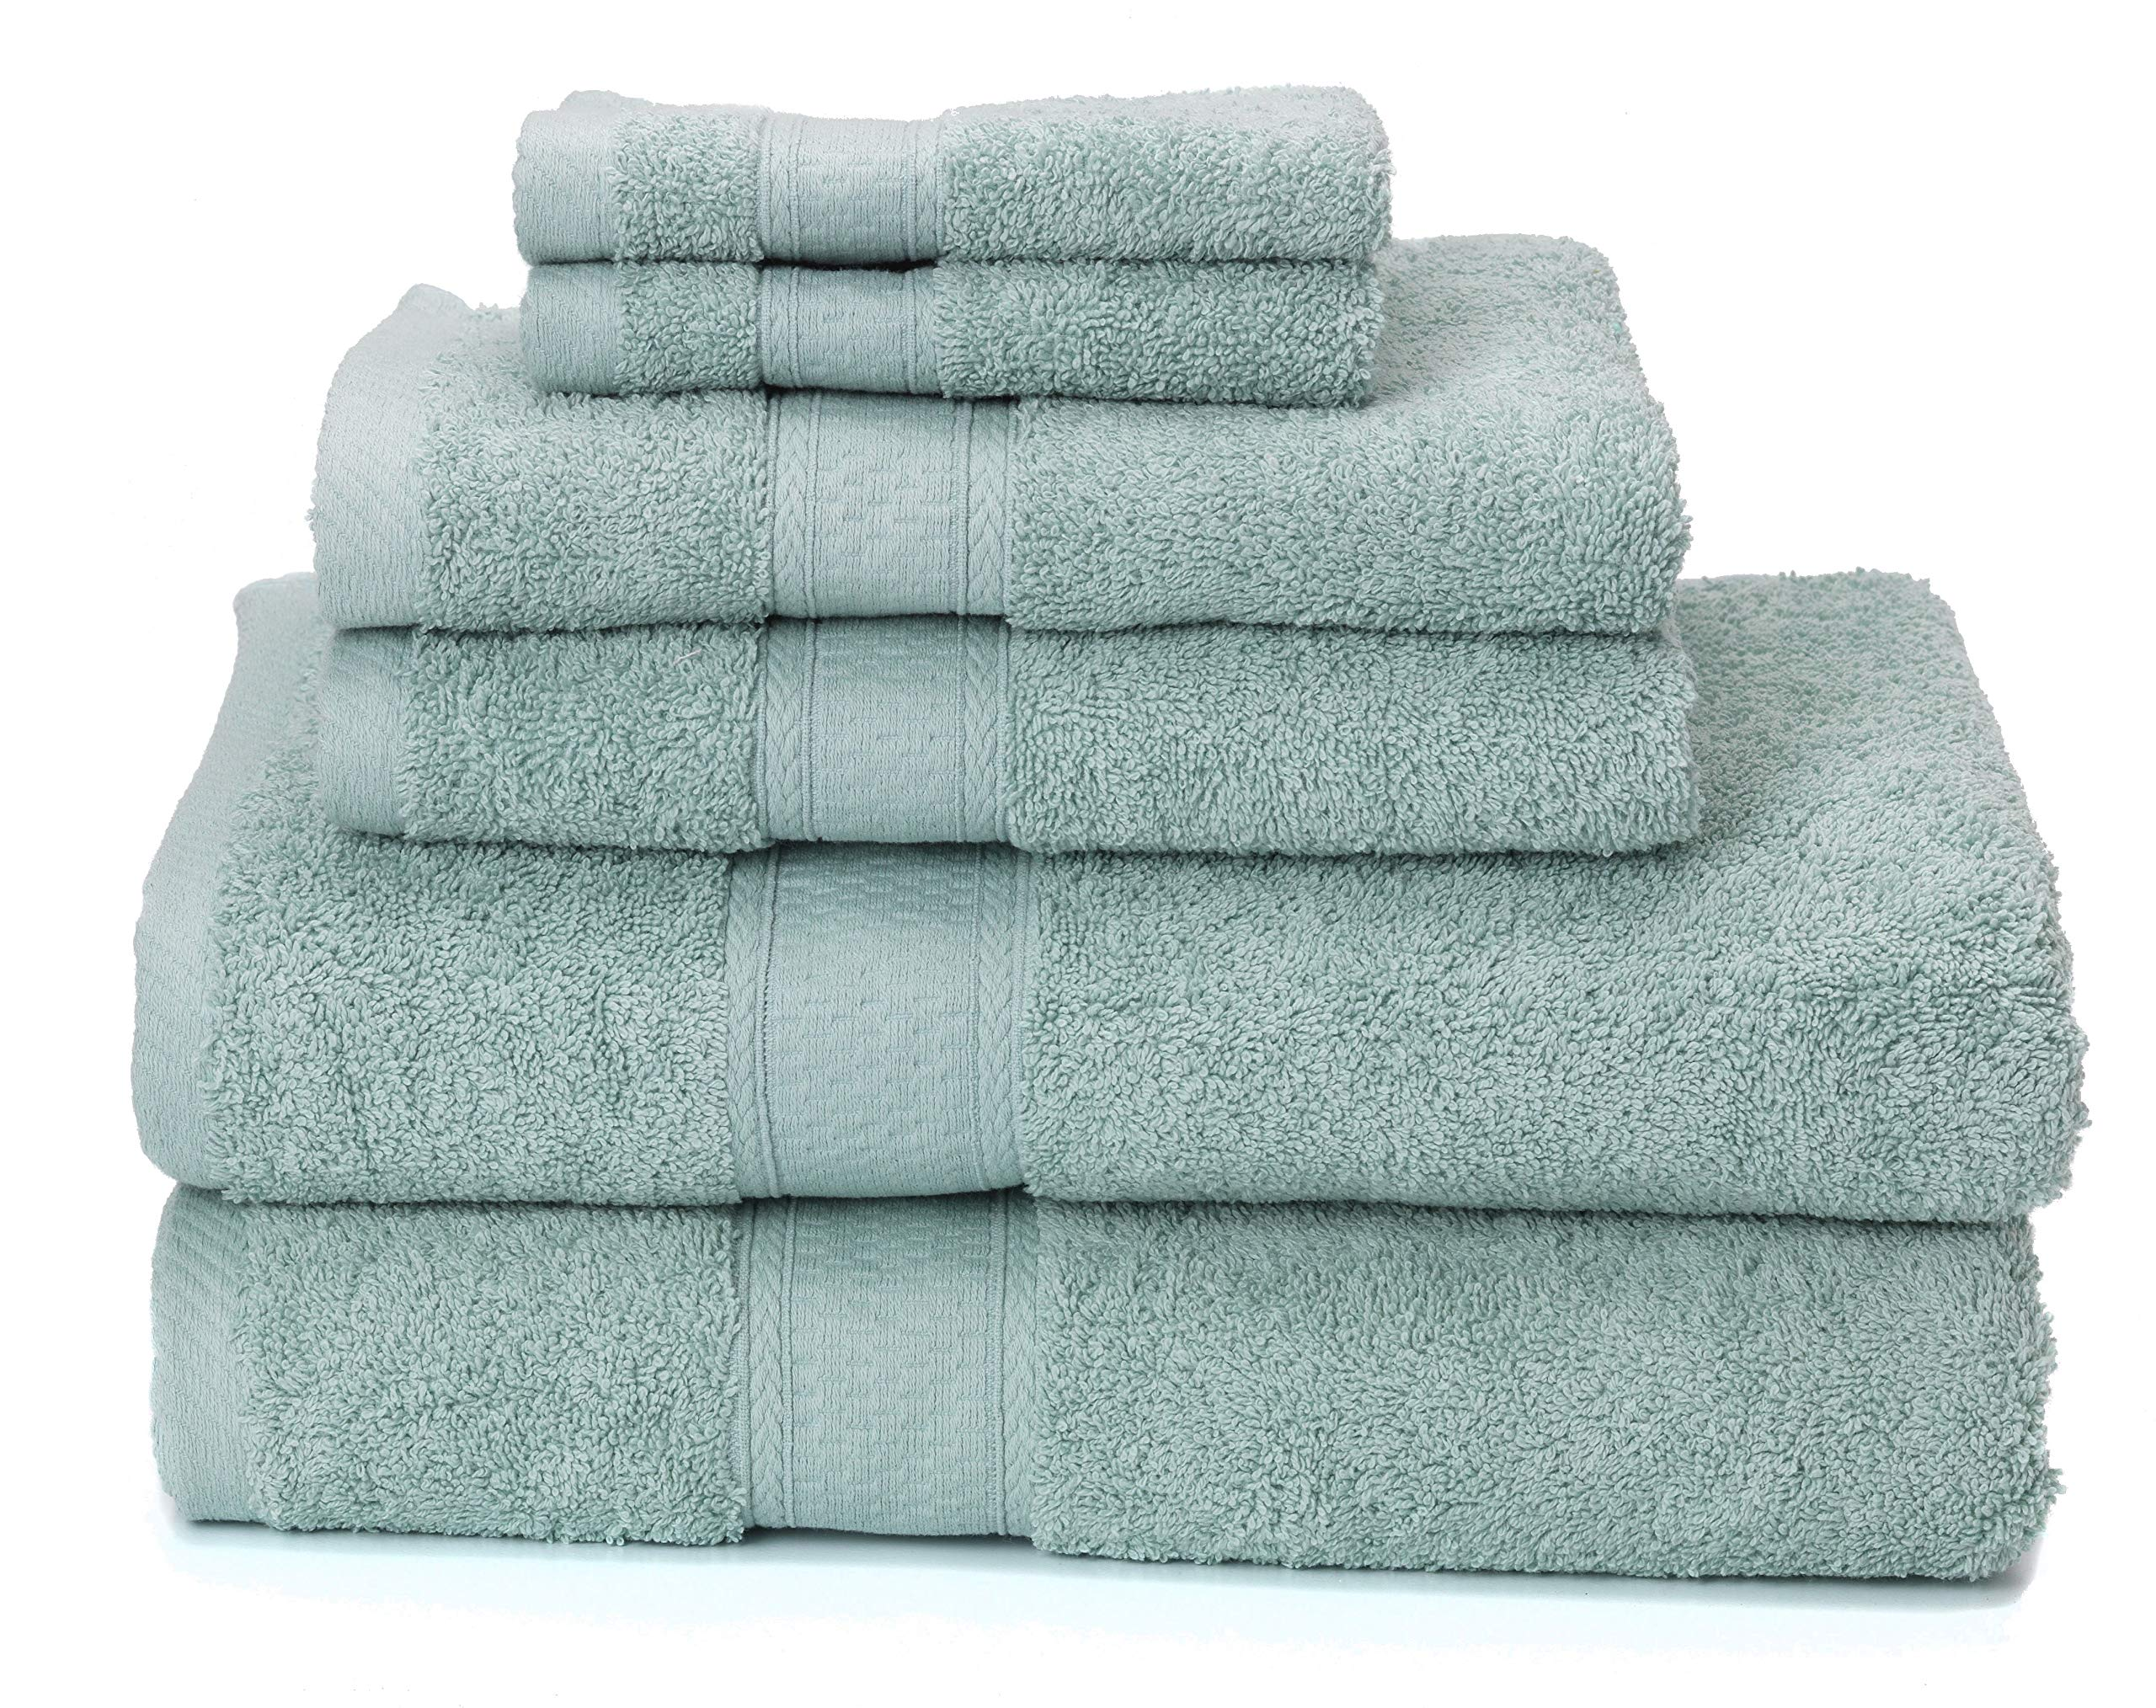 Ariv Collection Premium Bamboo Cotton 6-Piece Towel Set (2 Bath Towels, 2 Hand Towels and 2 Washcloths) - Natural, Ultra Absorbent and Eco-Friendly (Duck Egg) by Ariv Collection